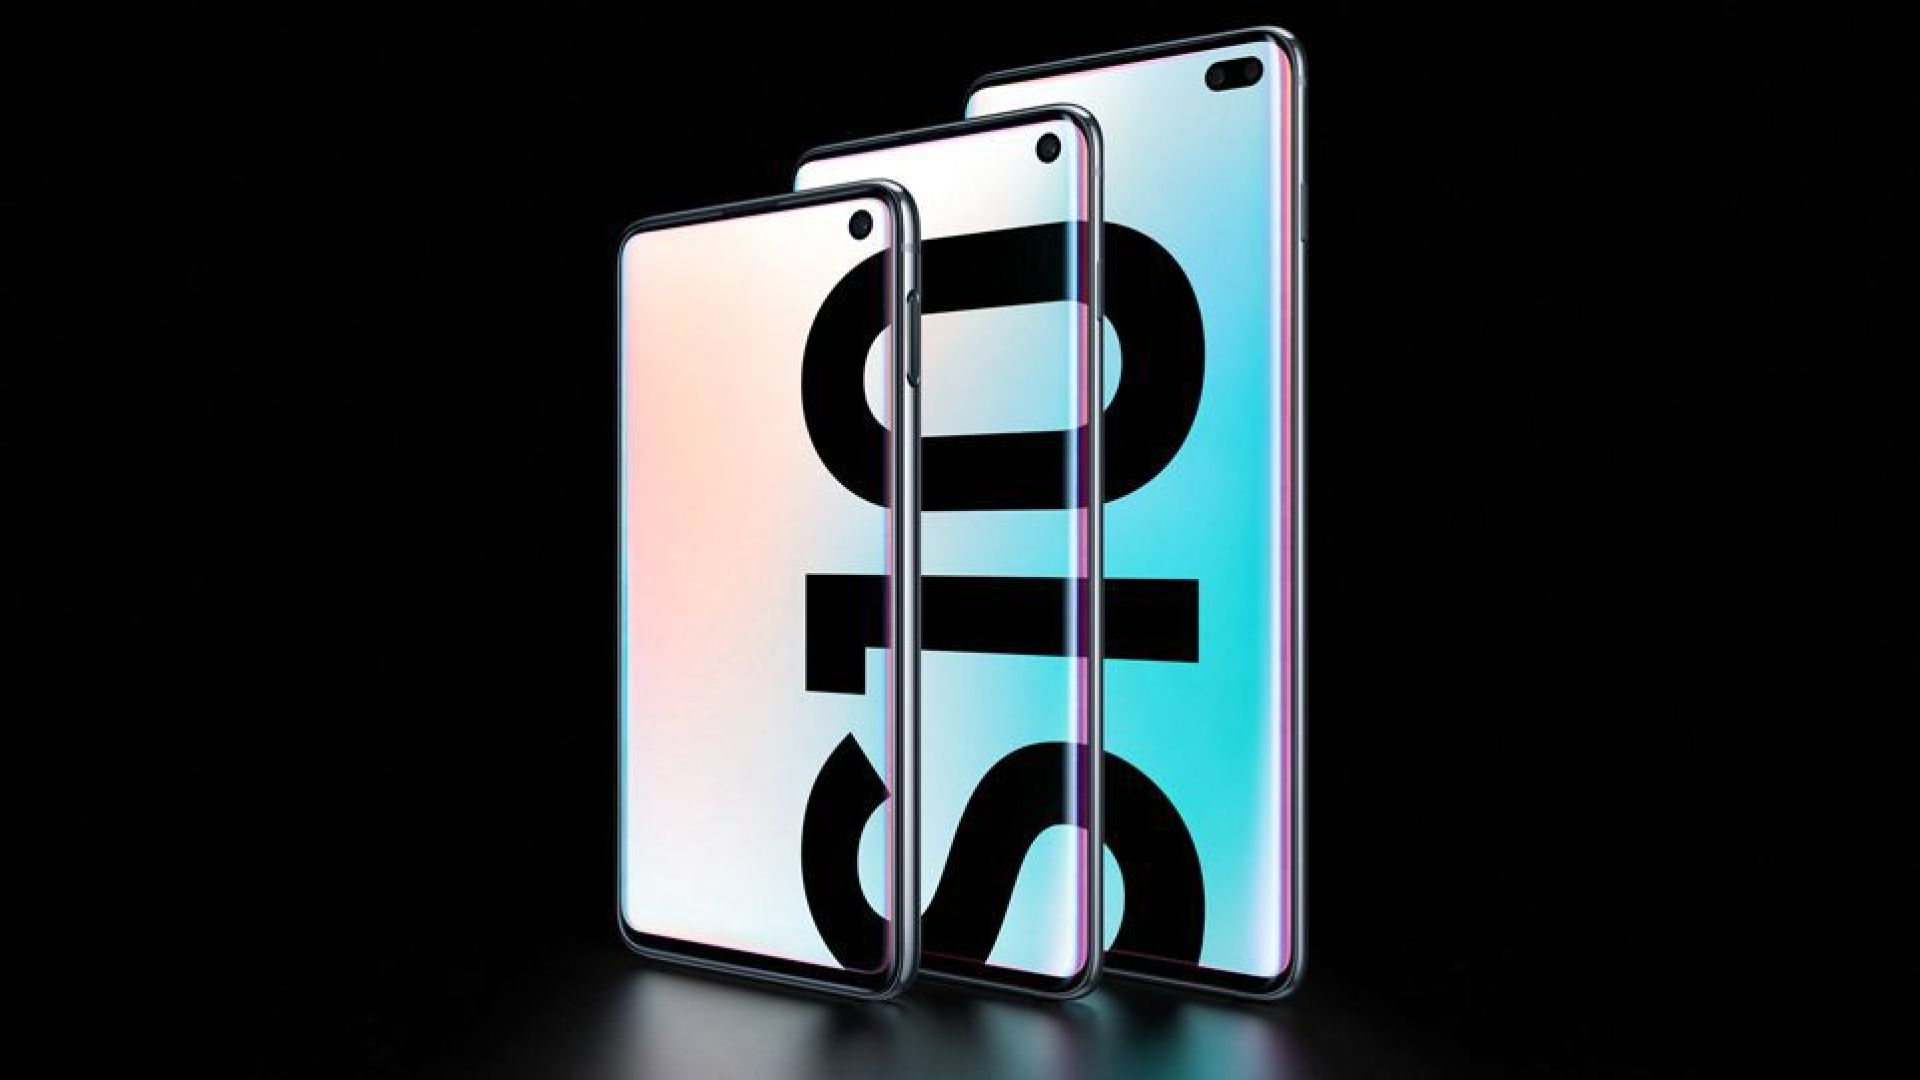 Samsung S10 deals: get the best price on a new Galaxy S10